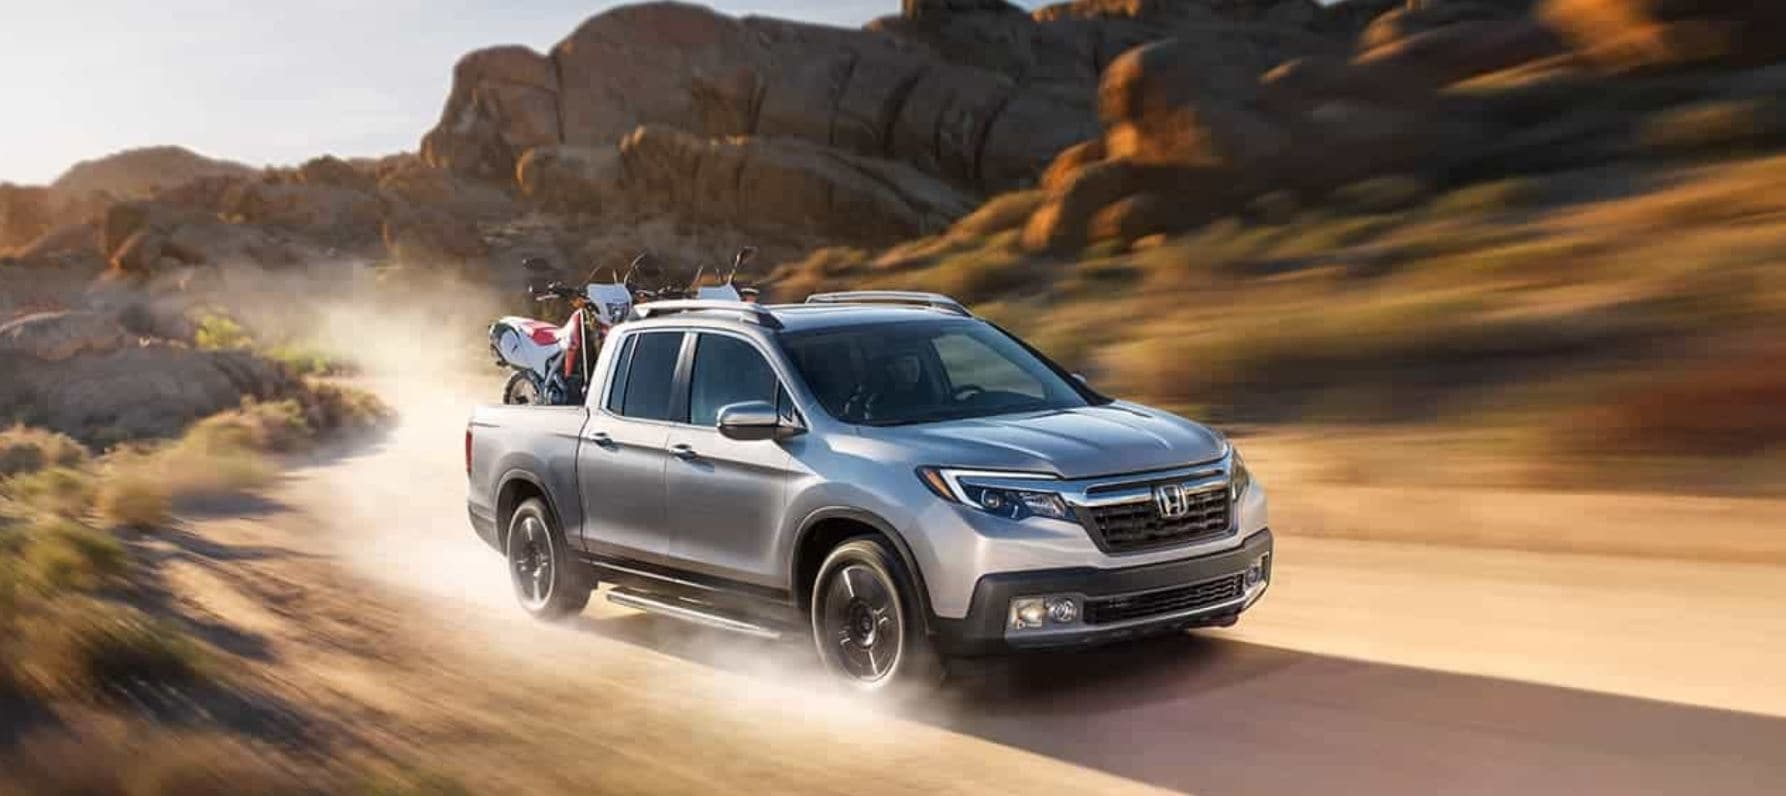 What's new with the 2020 Honda Ridgeline near Macomb IL